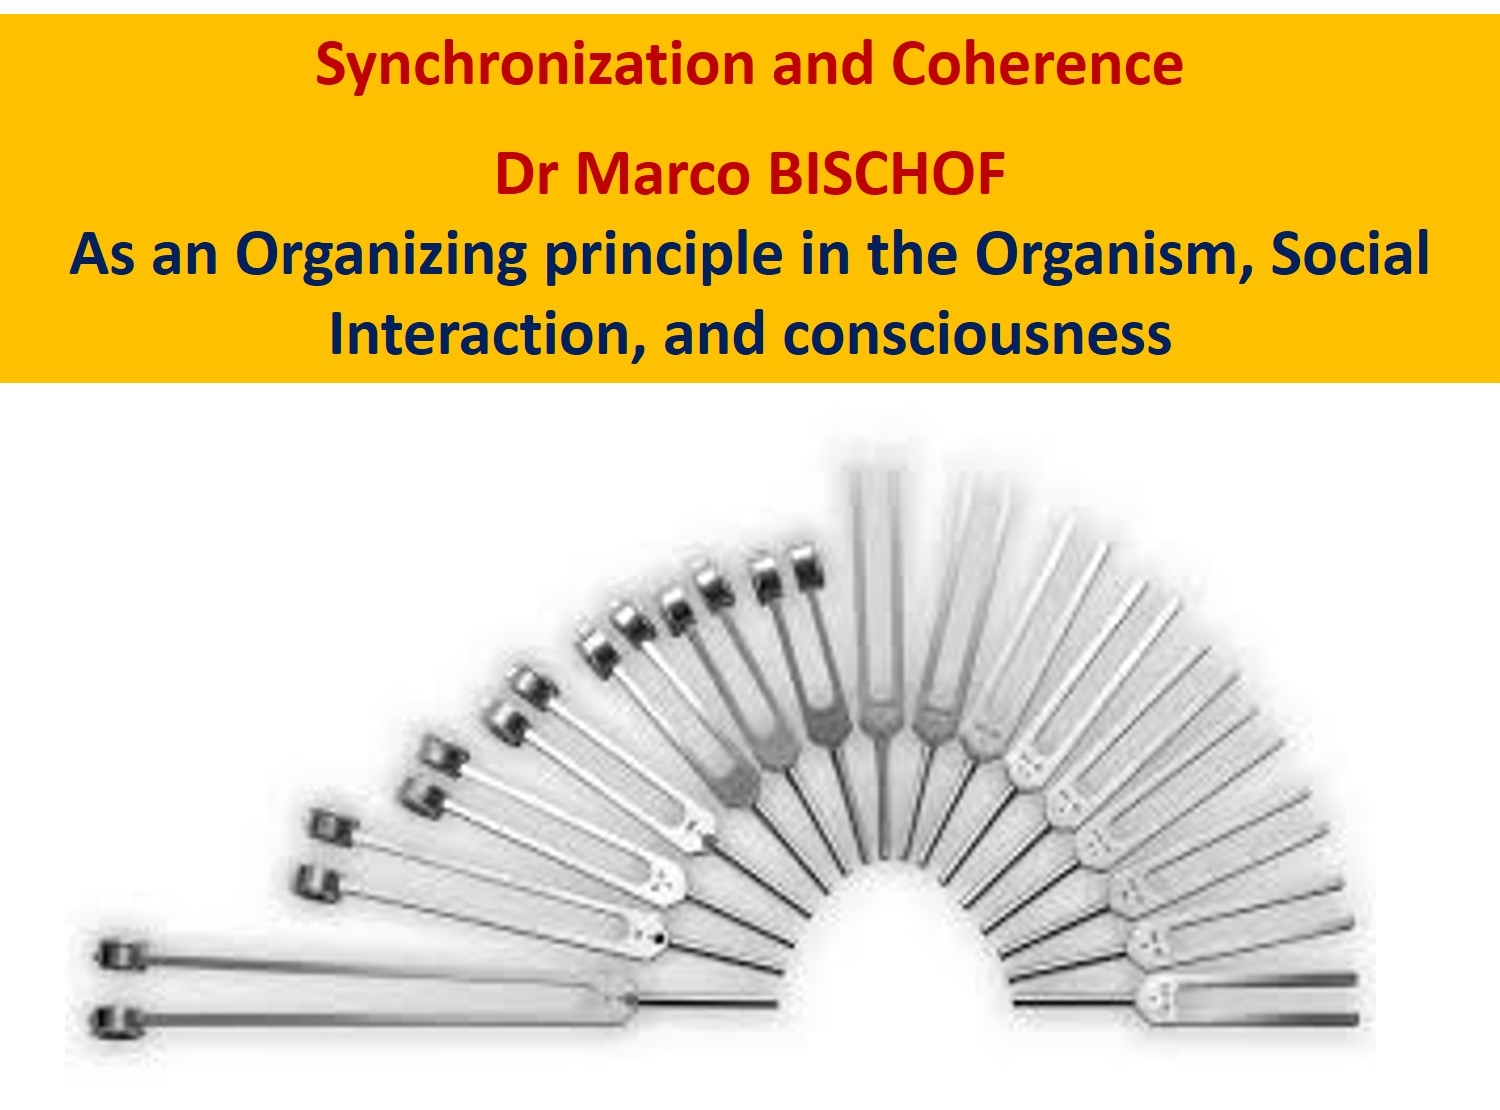 Dr BISCHOF Synchronization and Coherence